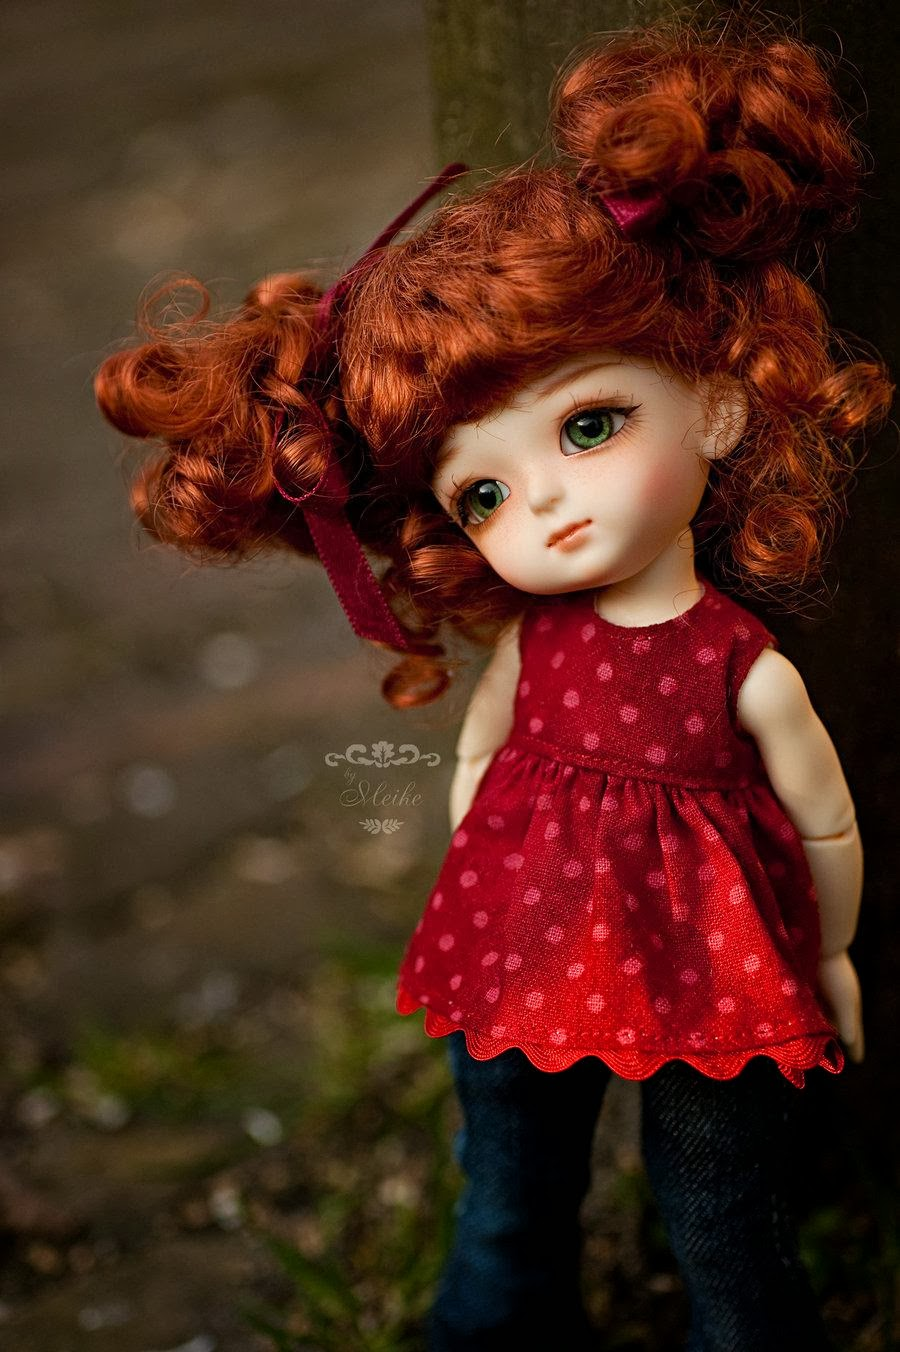 Download Happy Doll Wallpaper Gallery